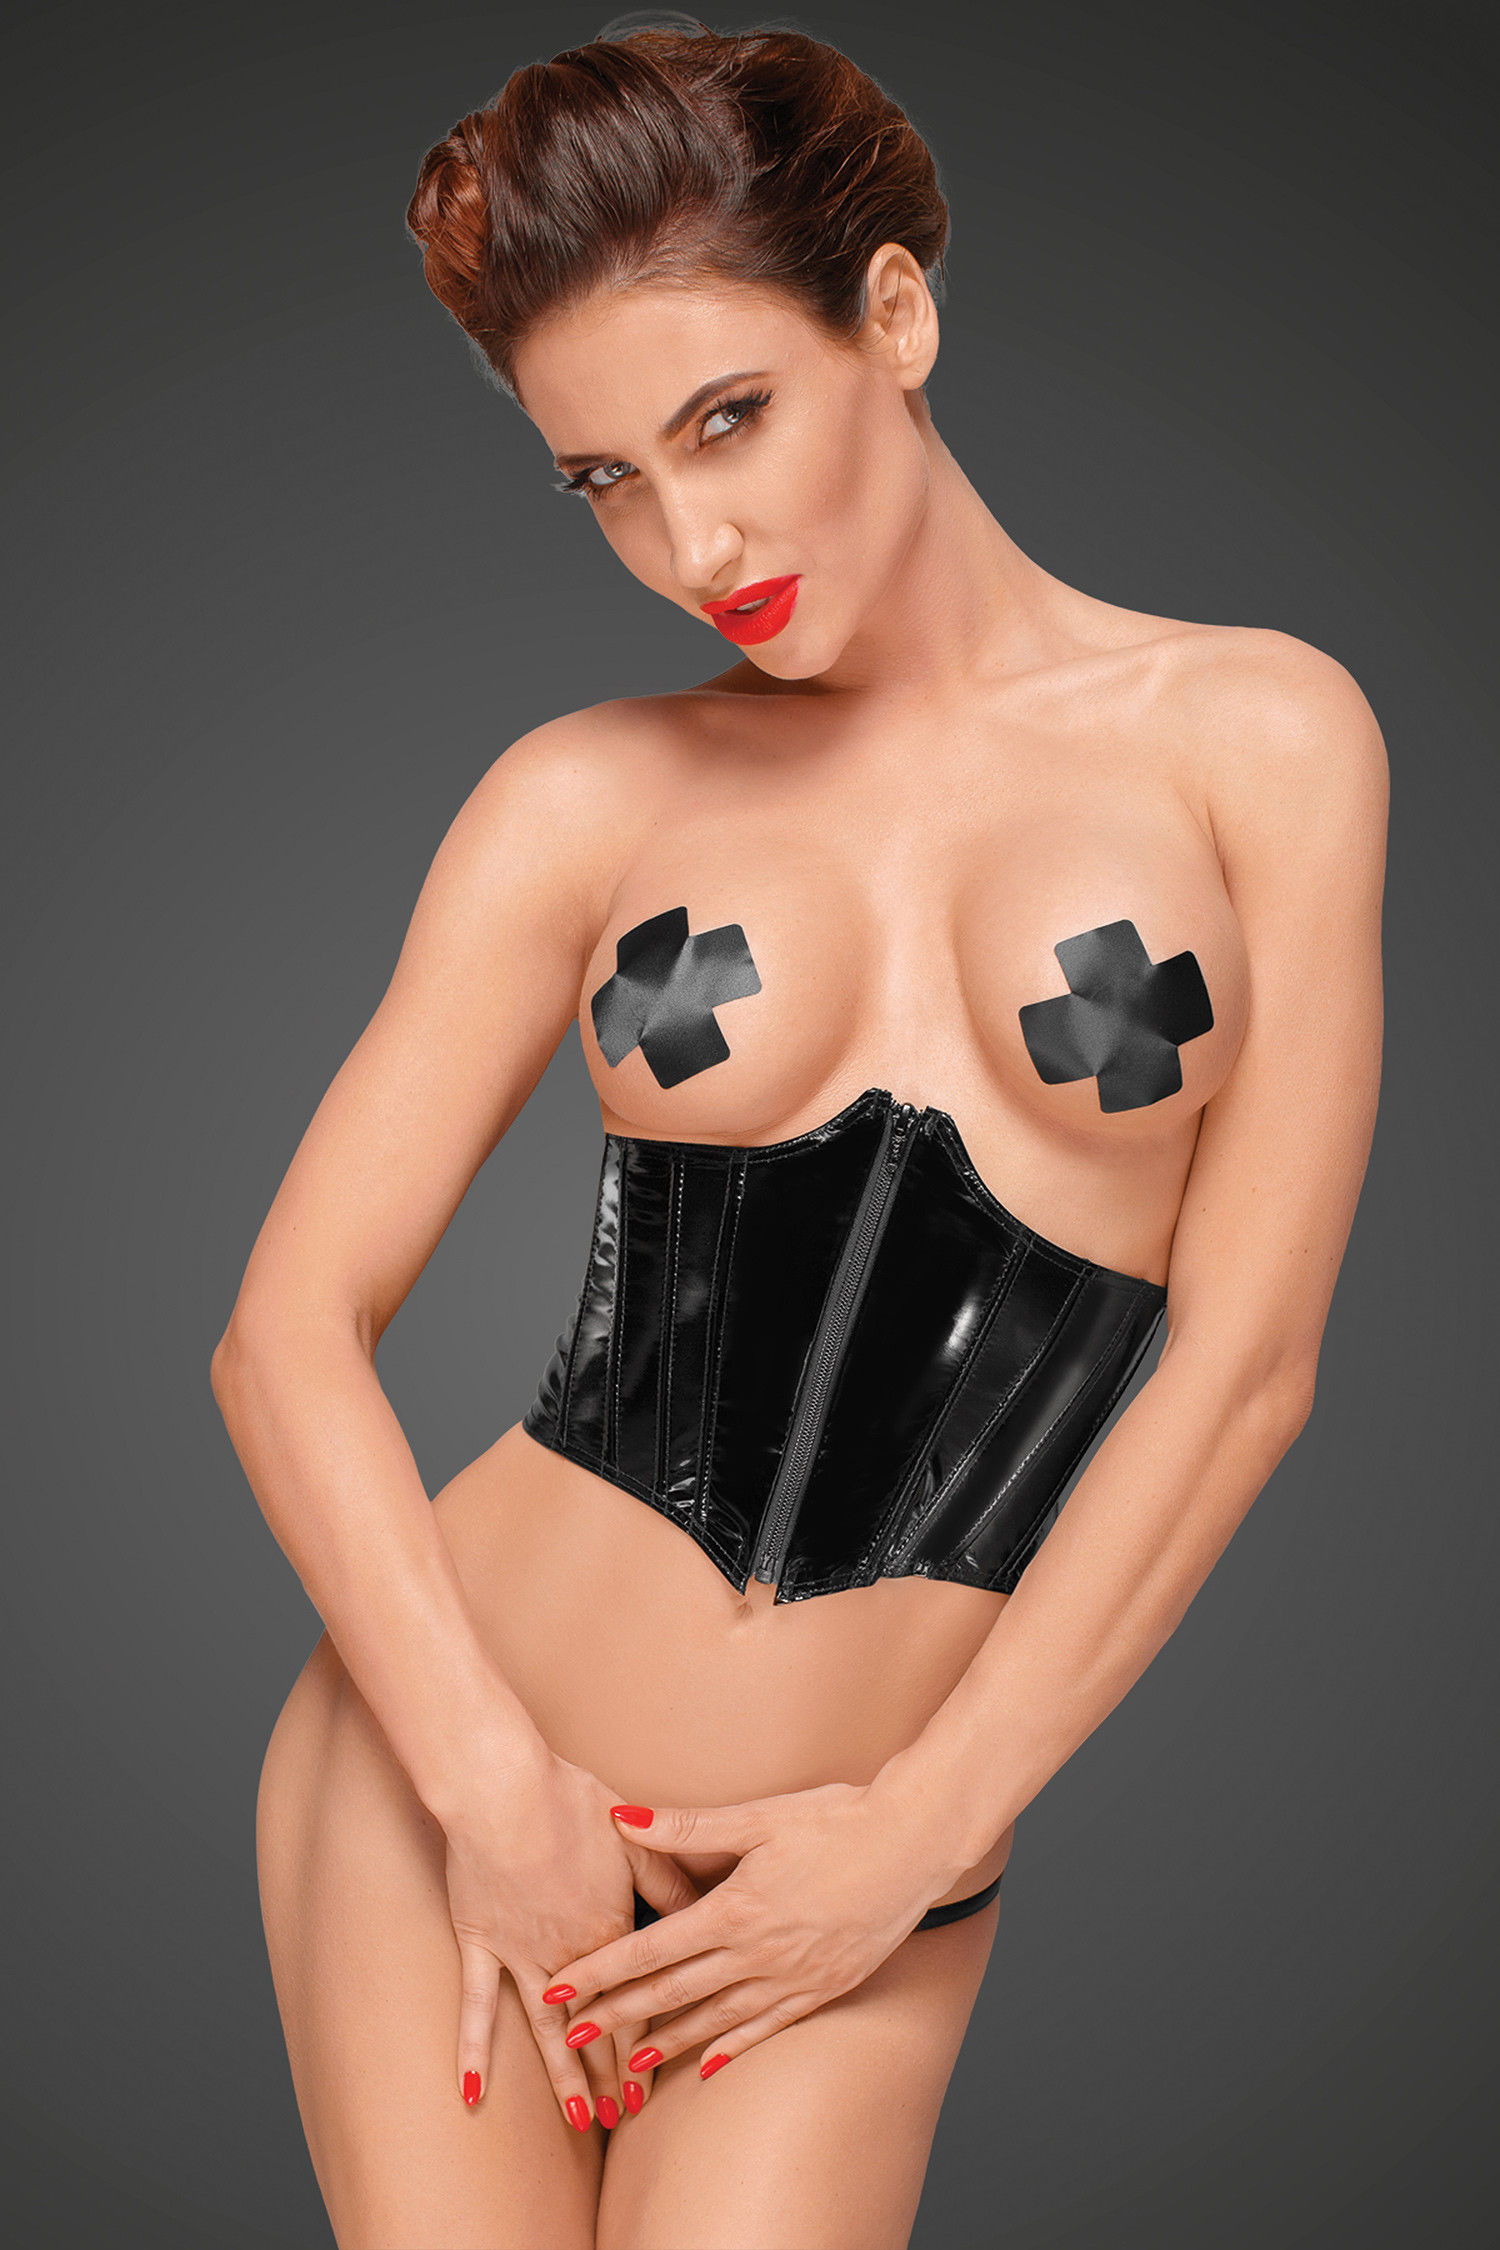 Noir Handmade F193 PVC Corset with Adjustable Lacing on The Back M